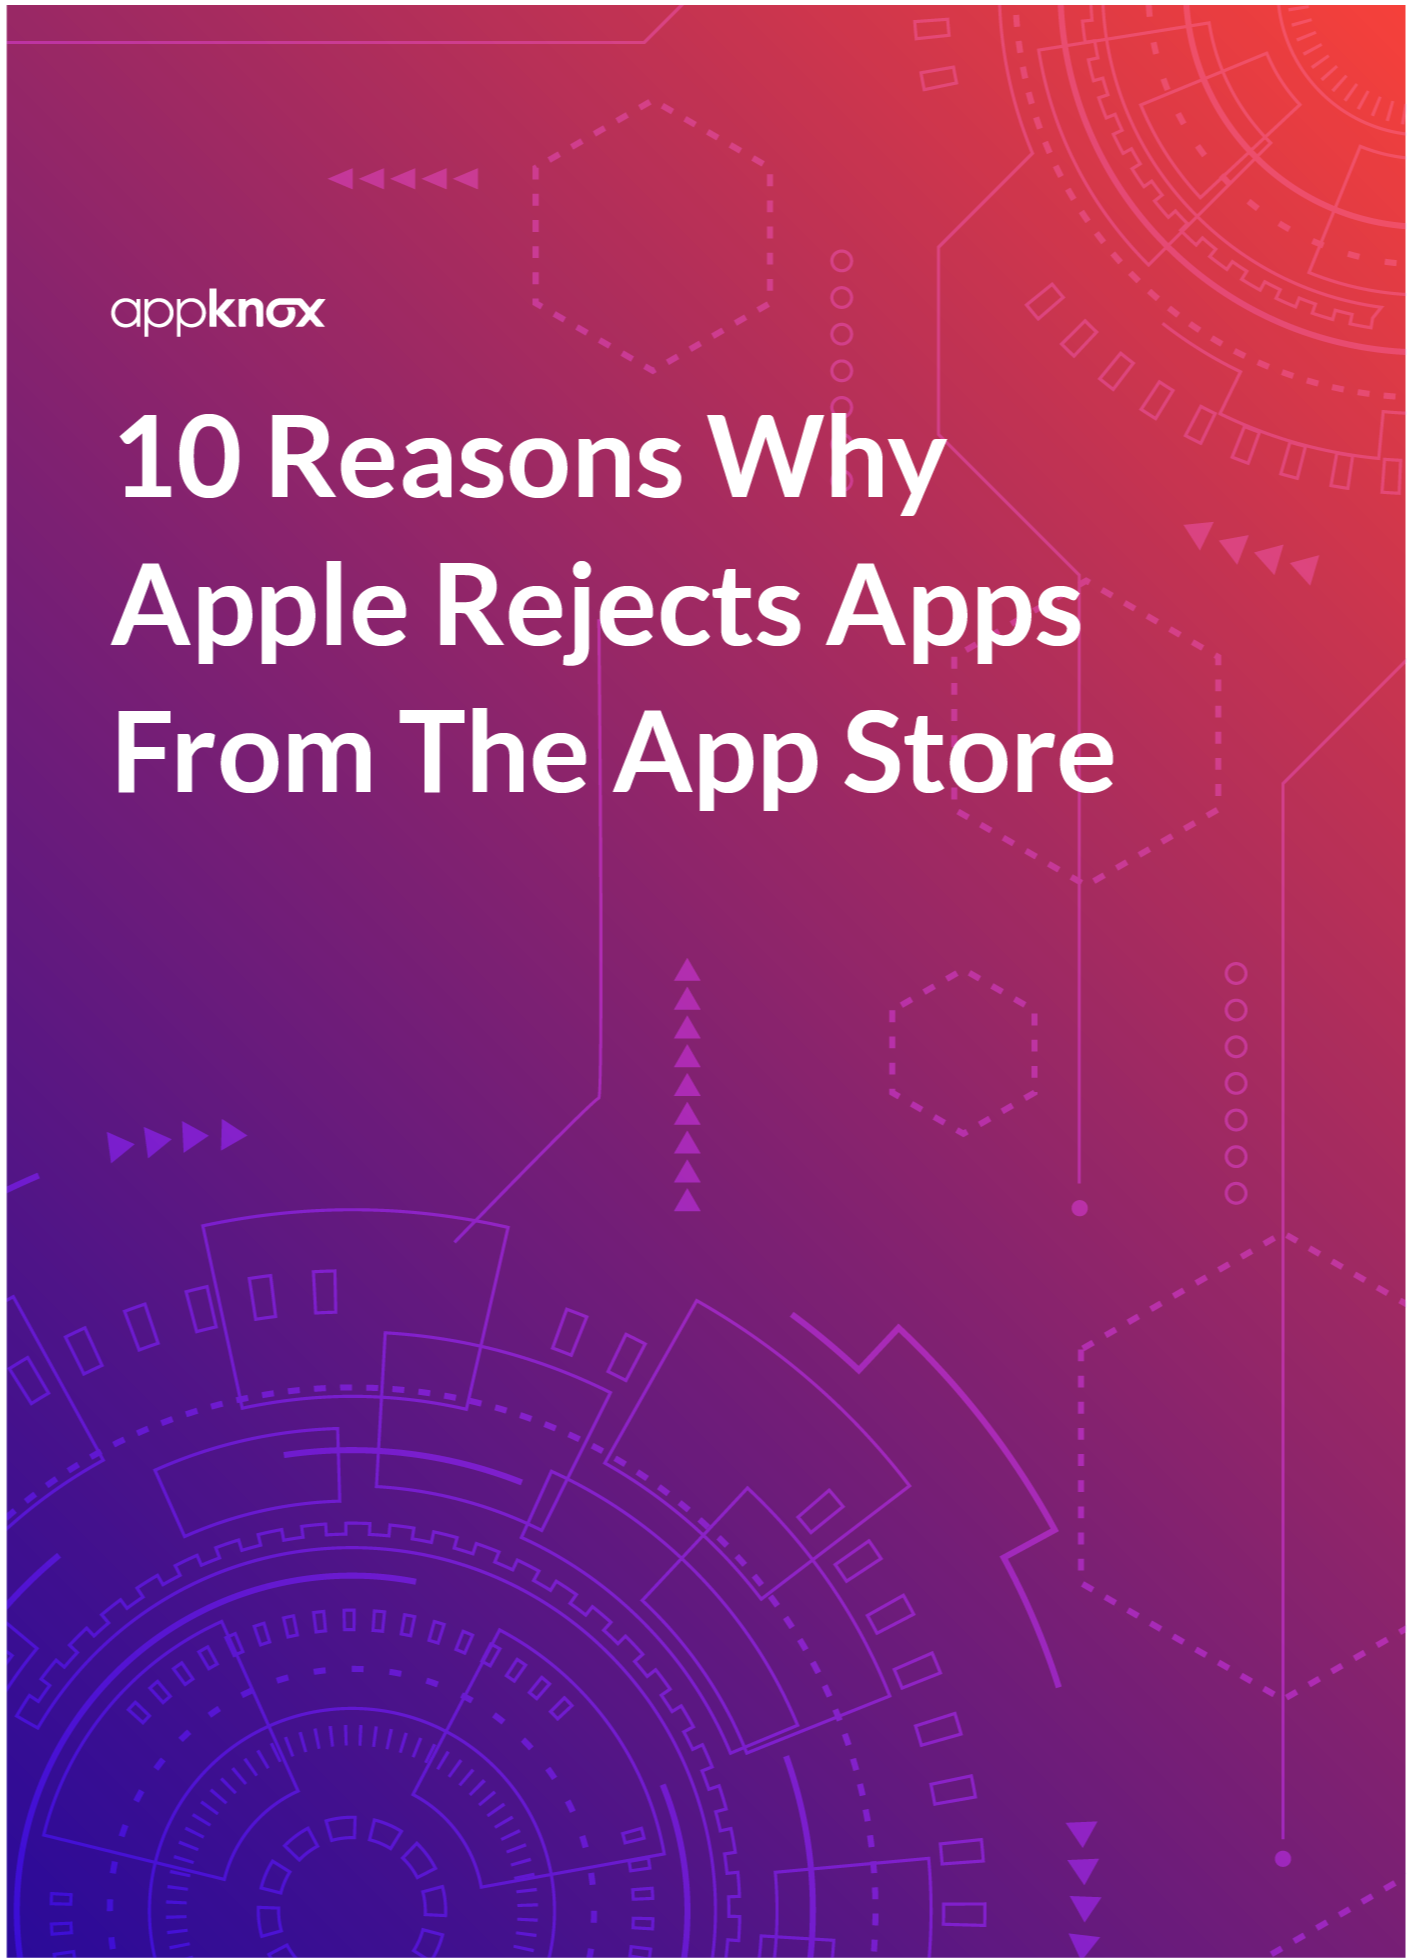 WHITE PAPER - 10 Reasons Why Apple Rejects Apps From The App Store-01-1